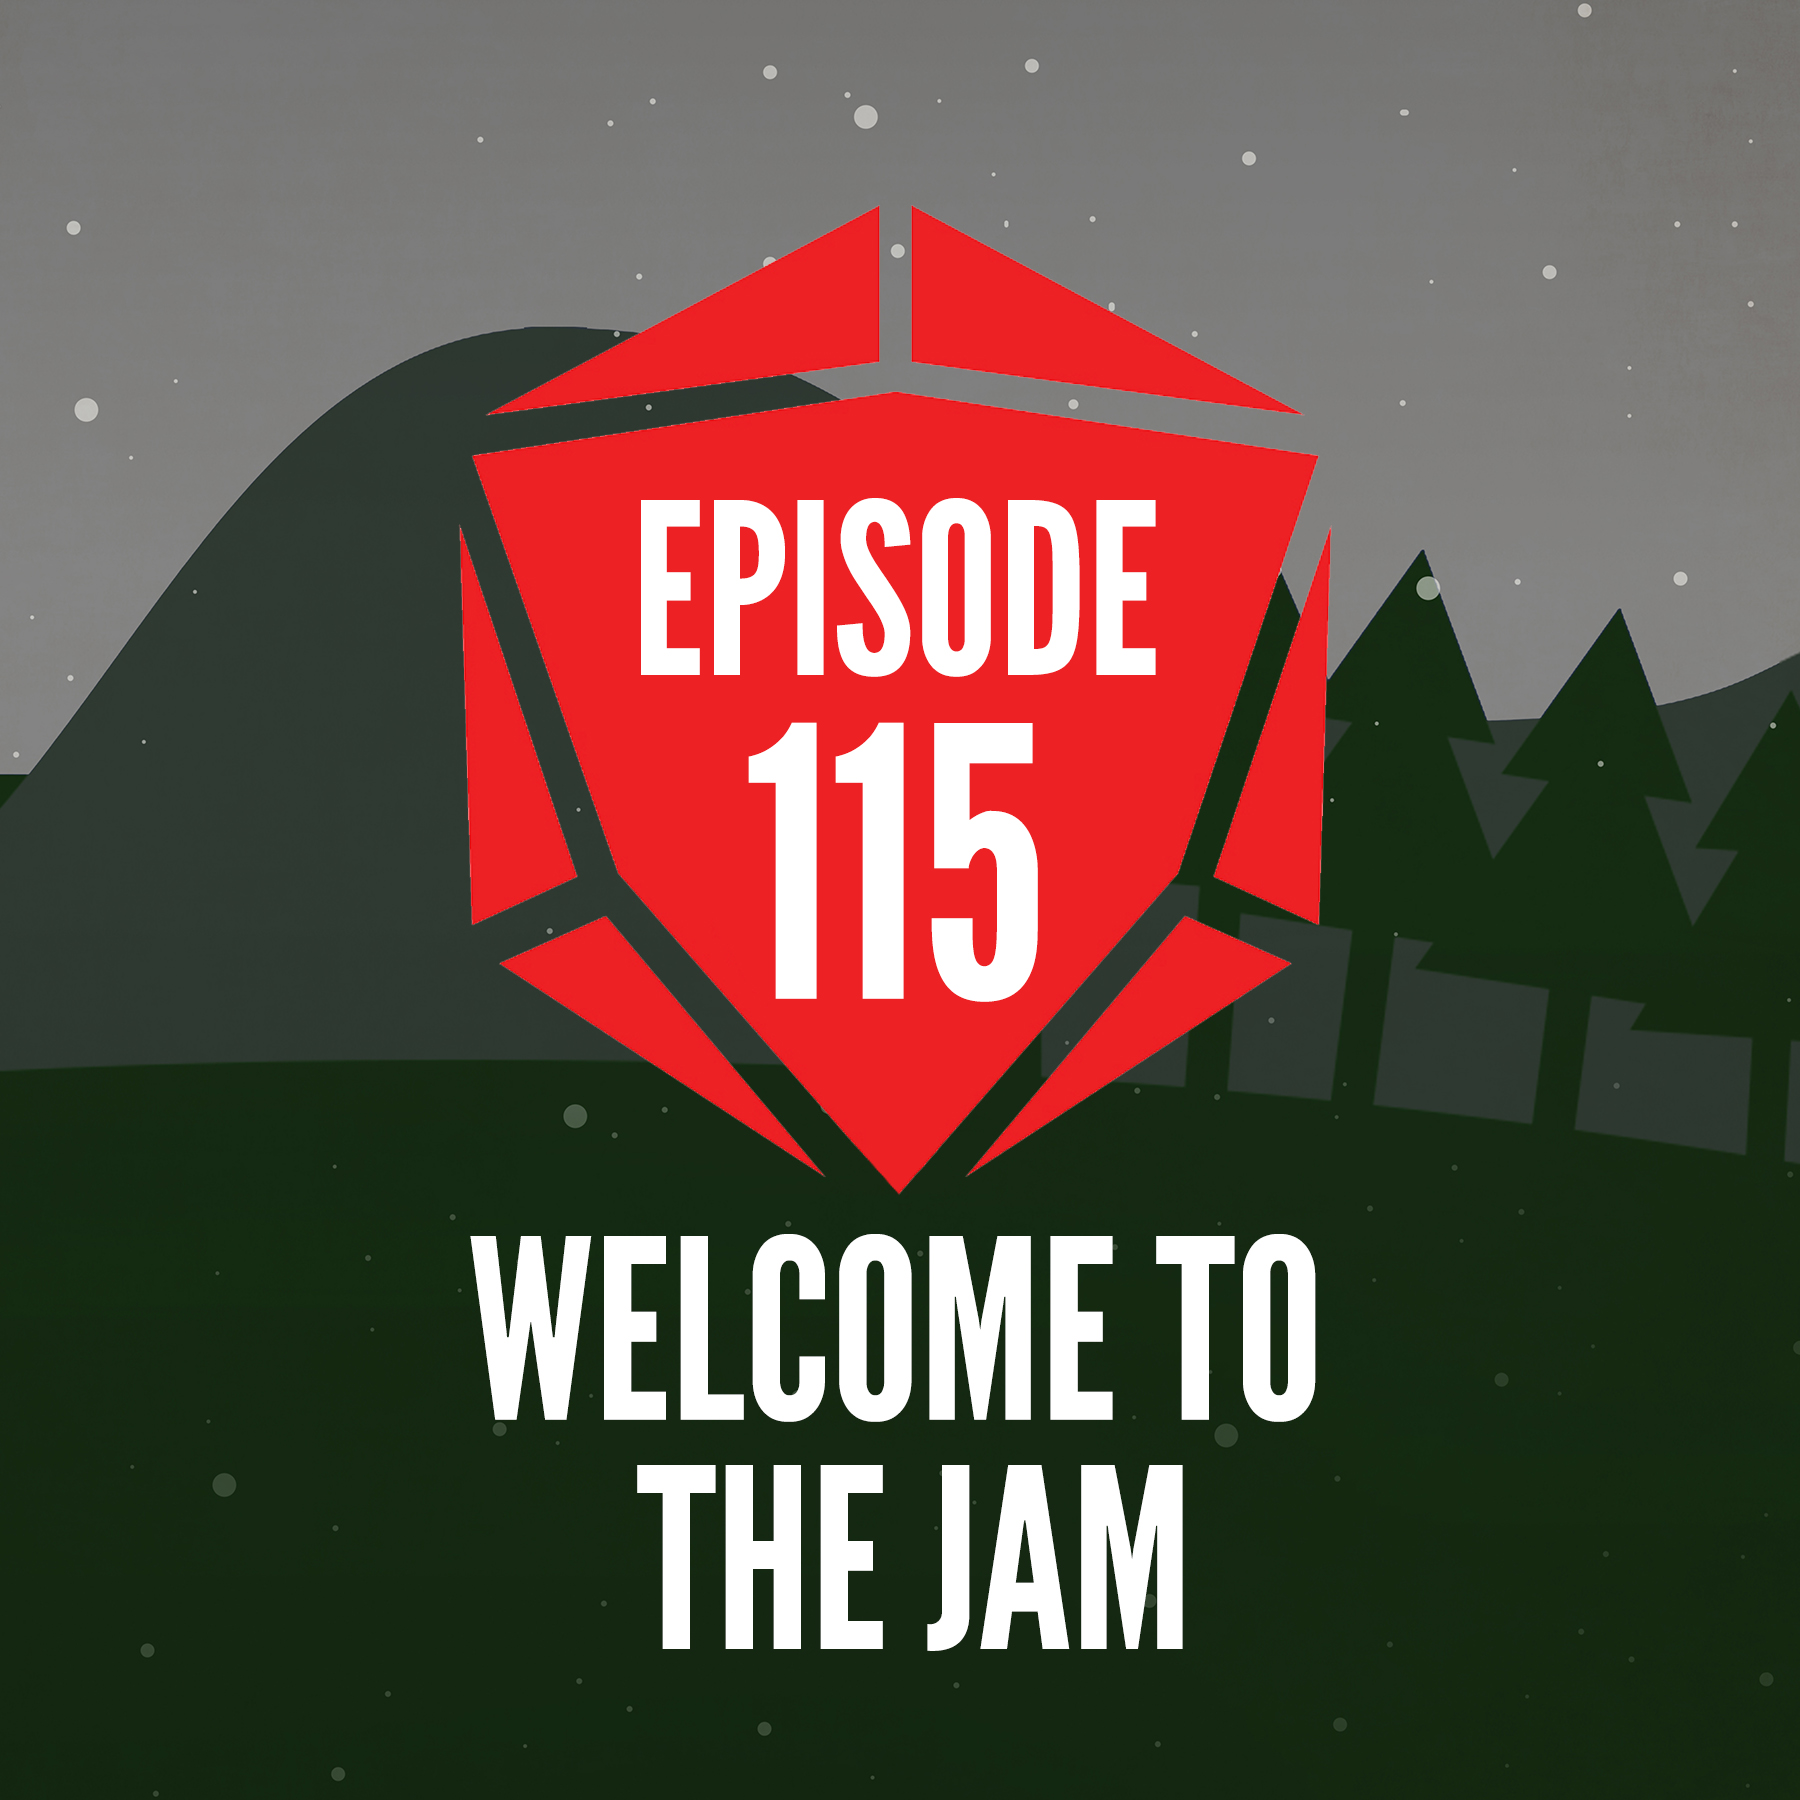 Episode 115: Welcome To The Jam